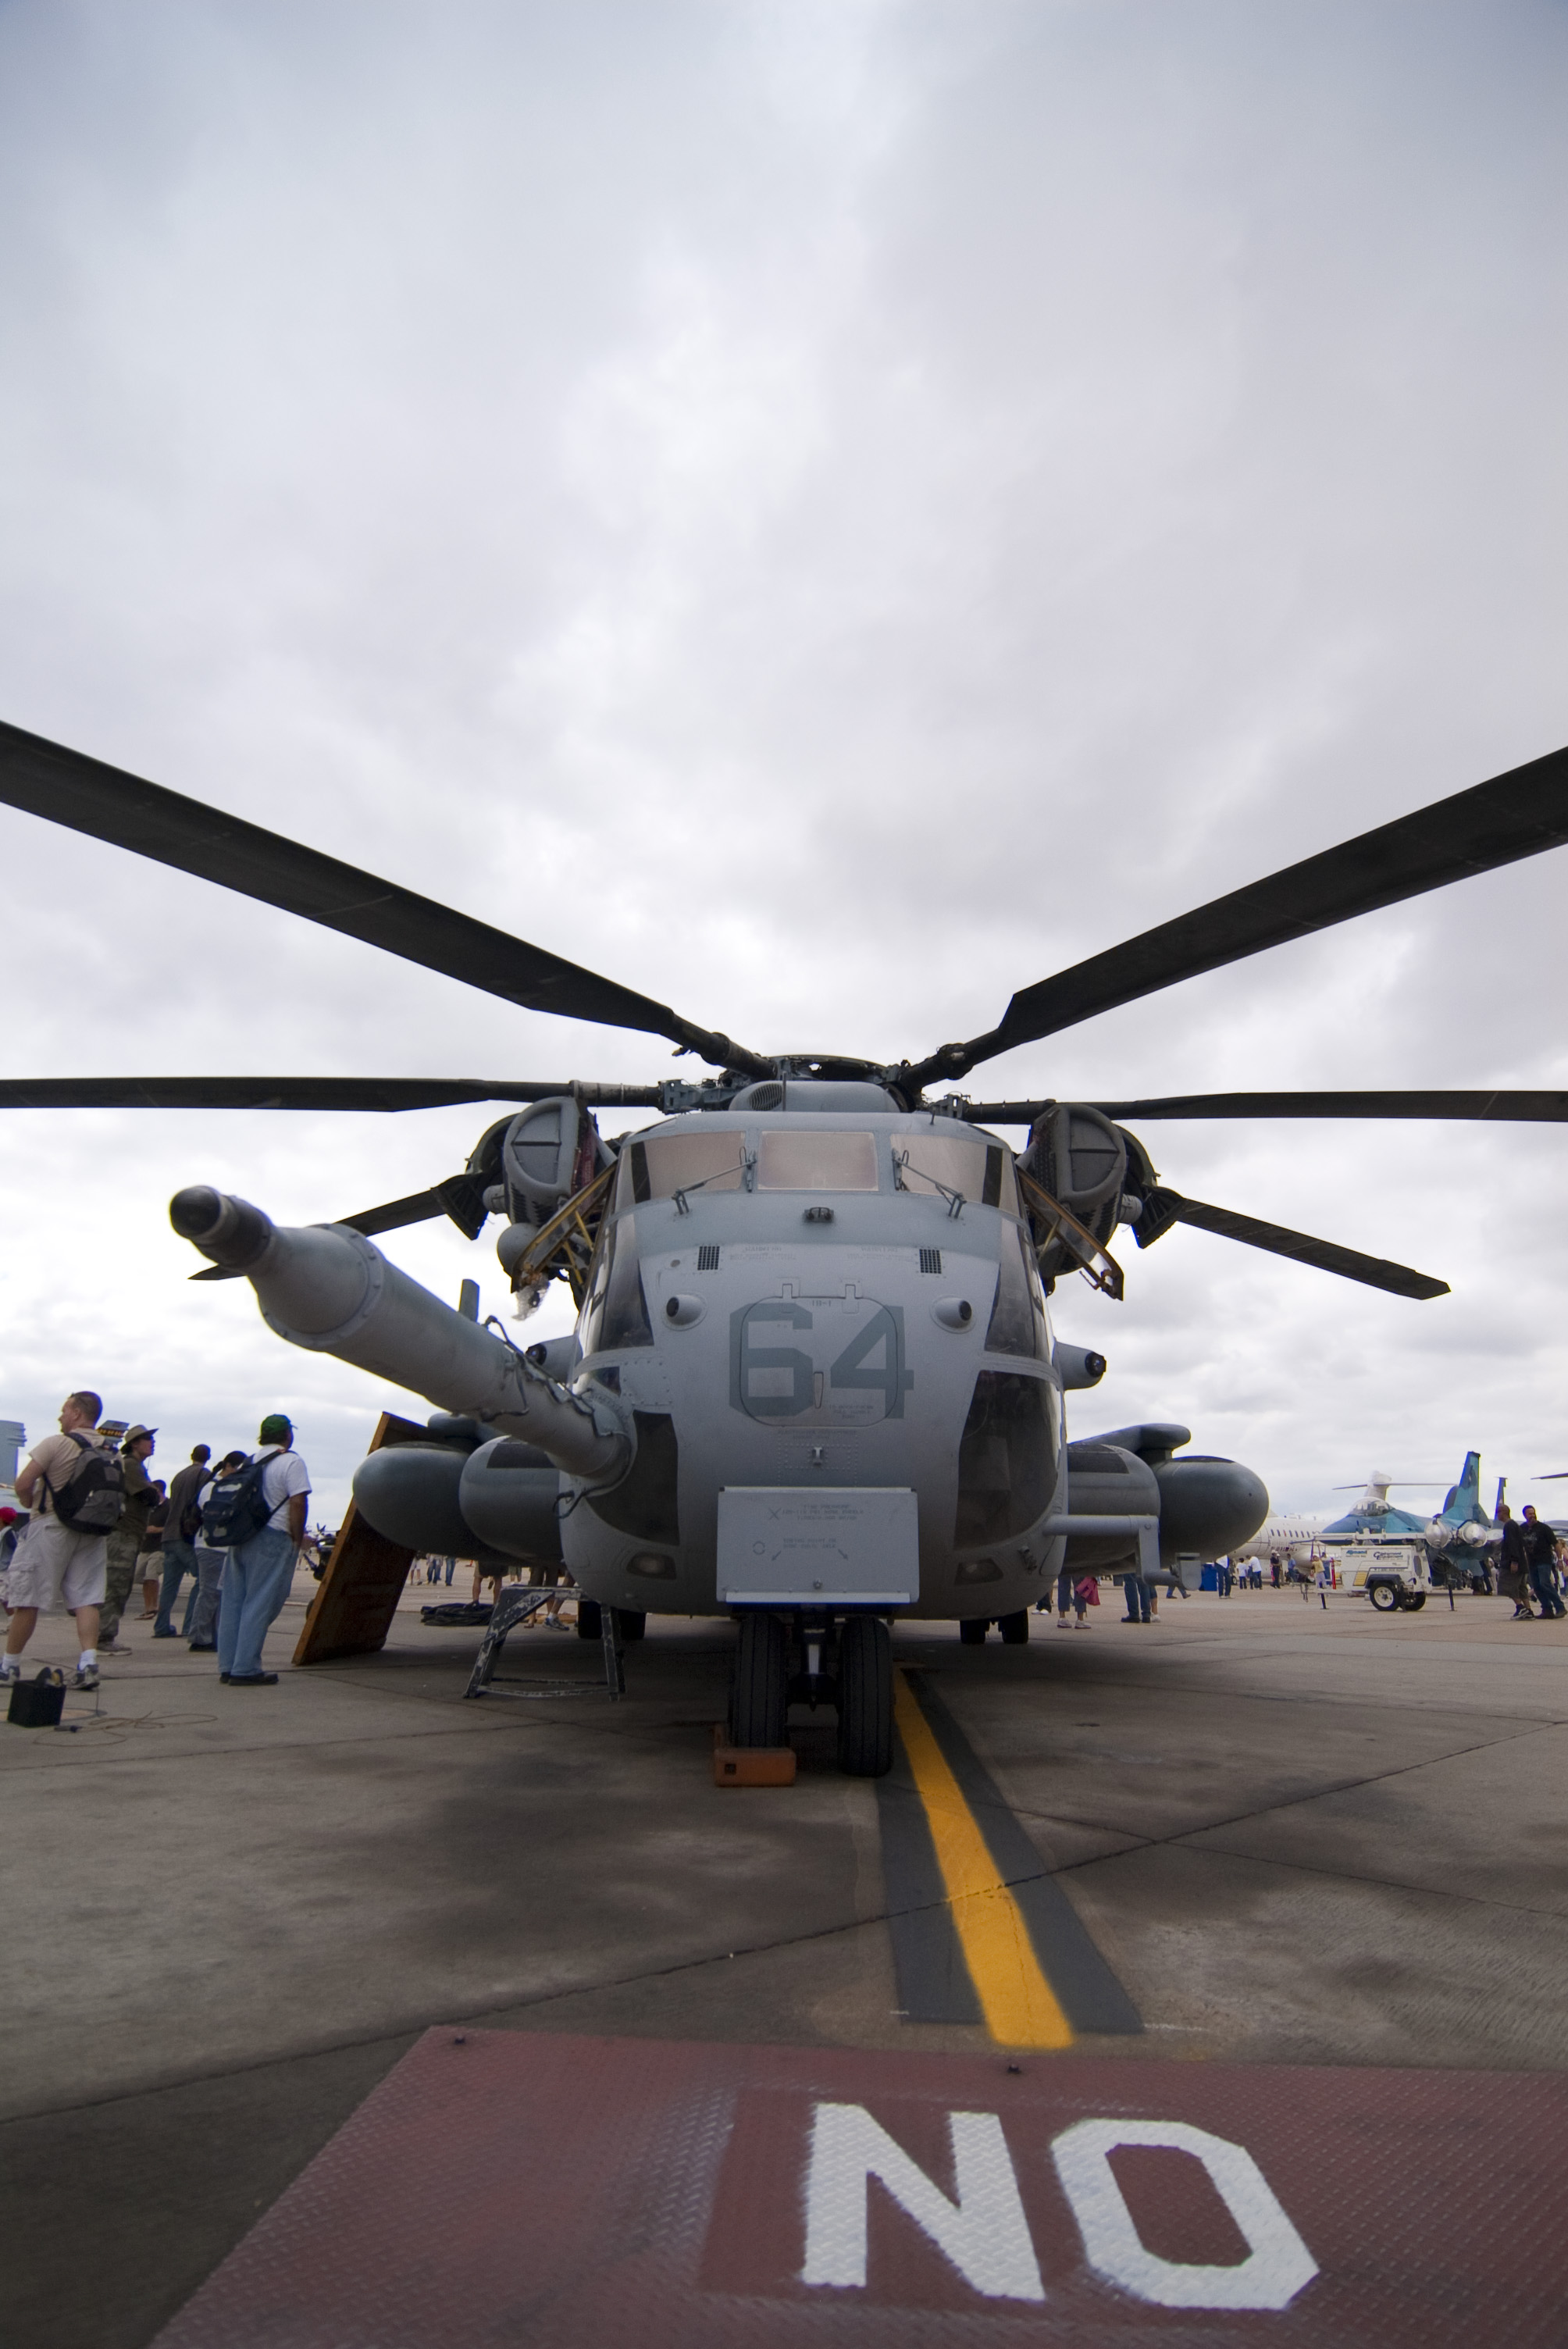 A wide angle view of the front of a Super Stallion Helicopter